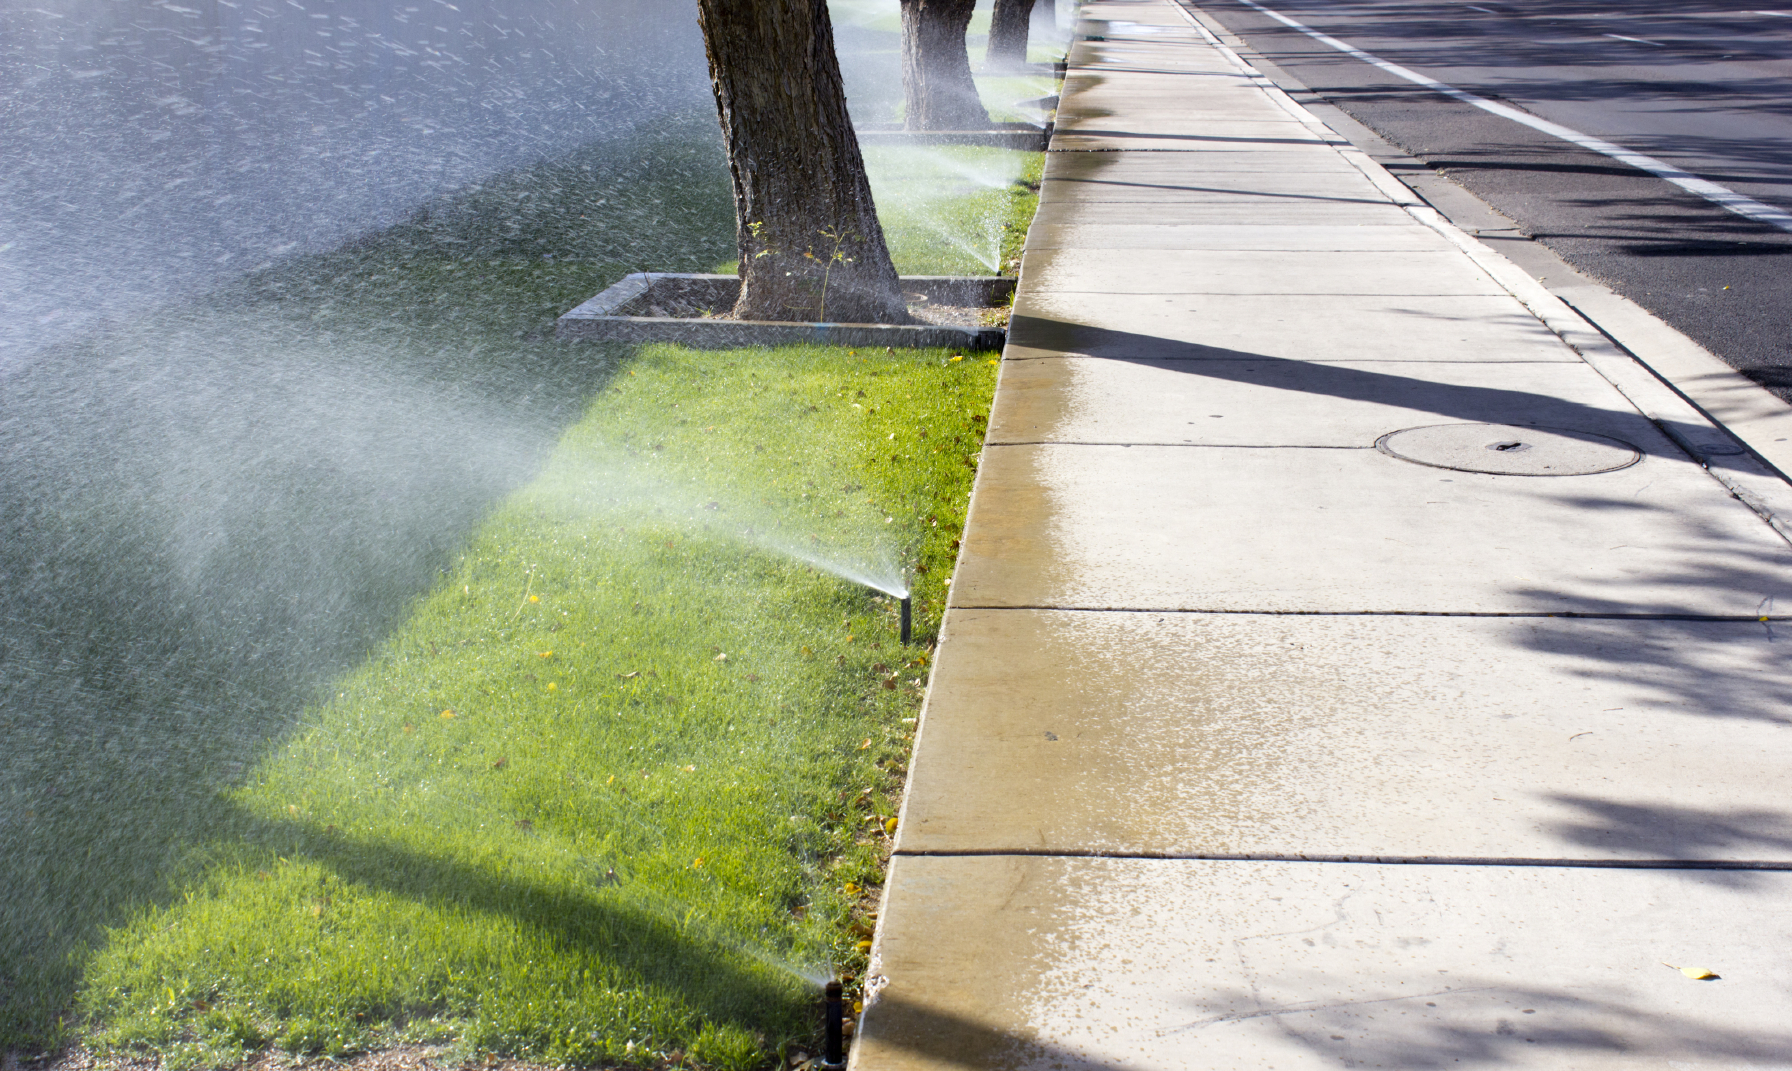 Water officials say people often forget to turn off lawn sprinklers when it starts raining. (iStock/Getty Images)